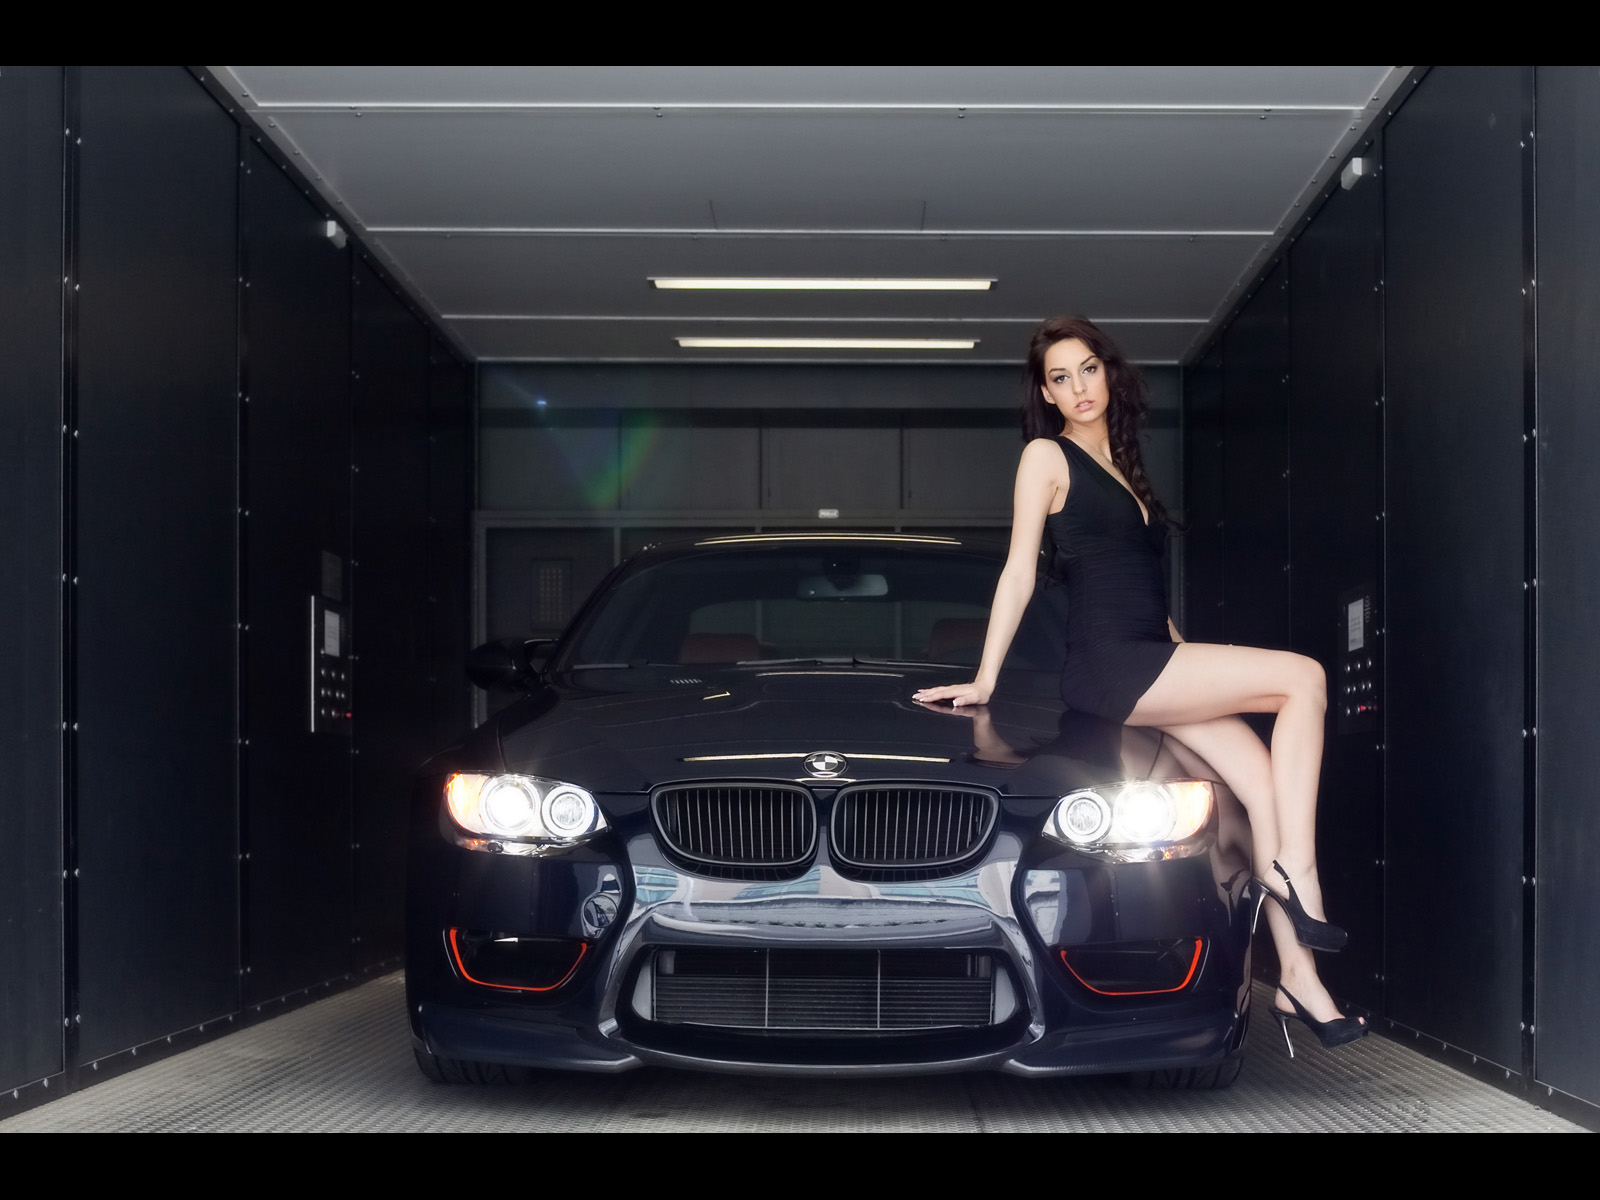 Bmw Girl Wallpaper By Jokensy: Wallpapers De Mujeres Y Coches:Hot